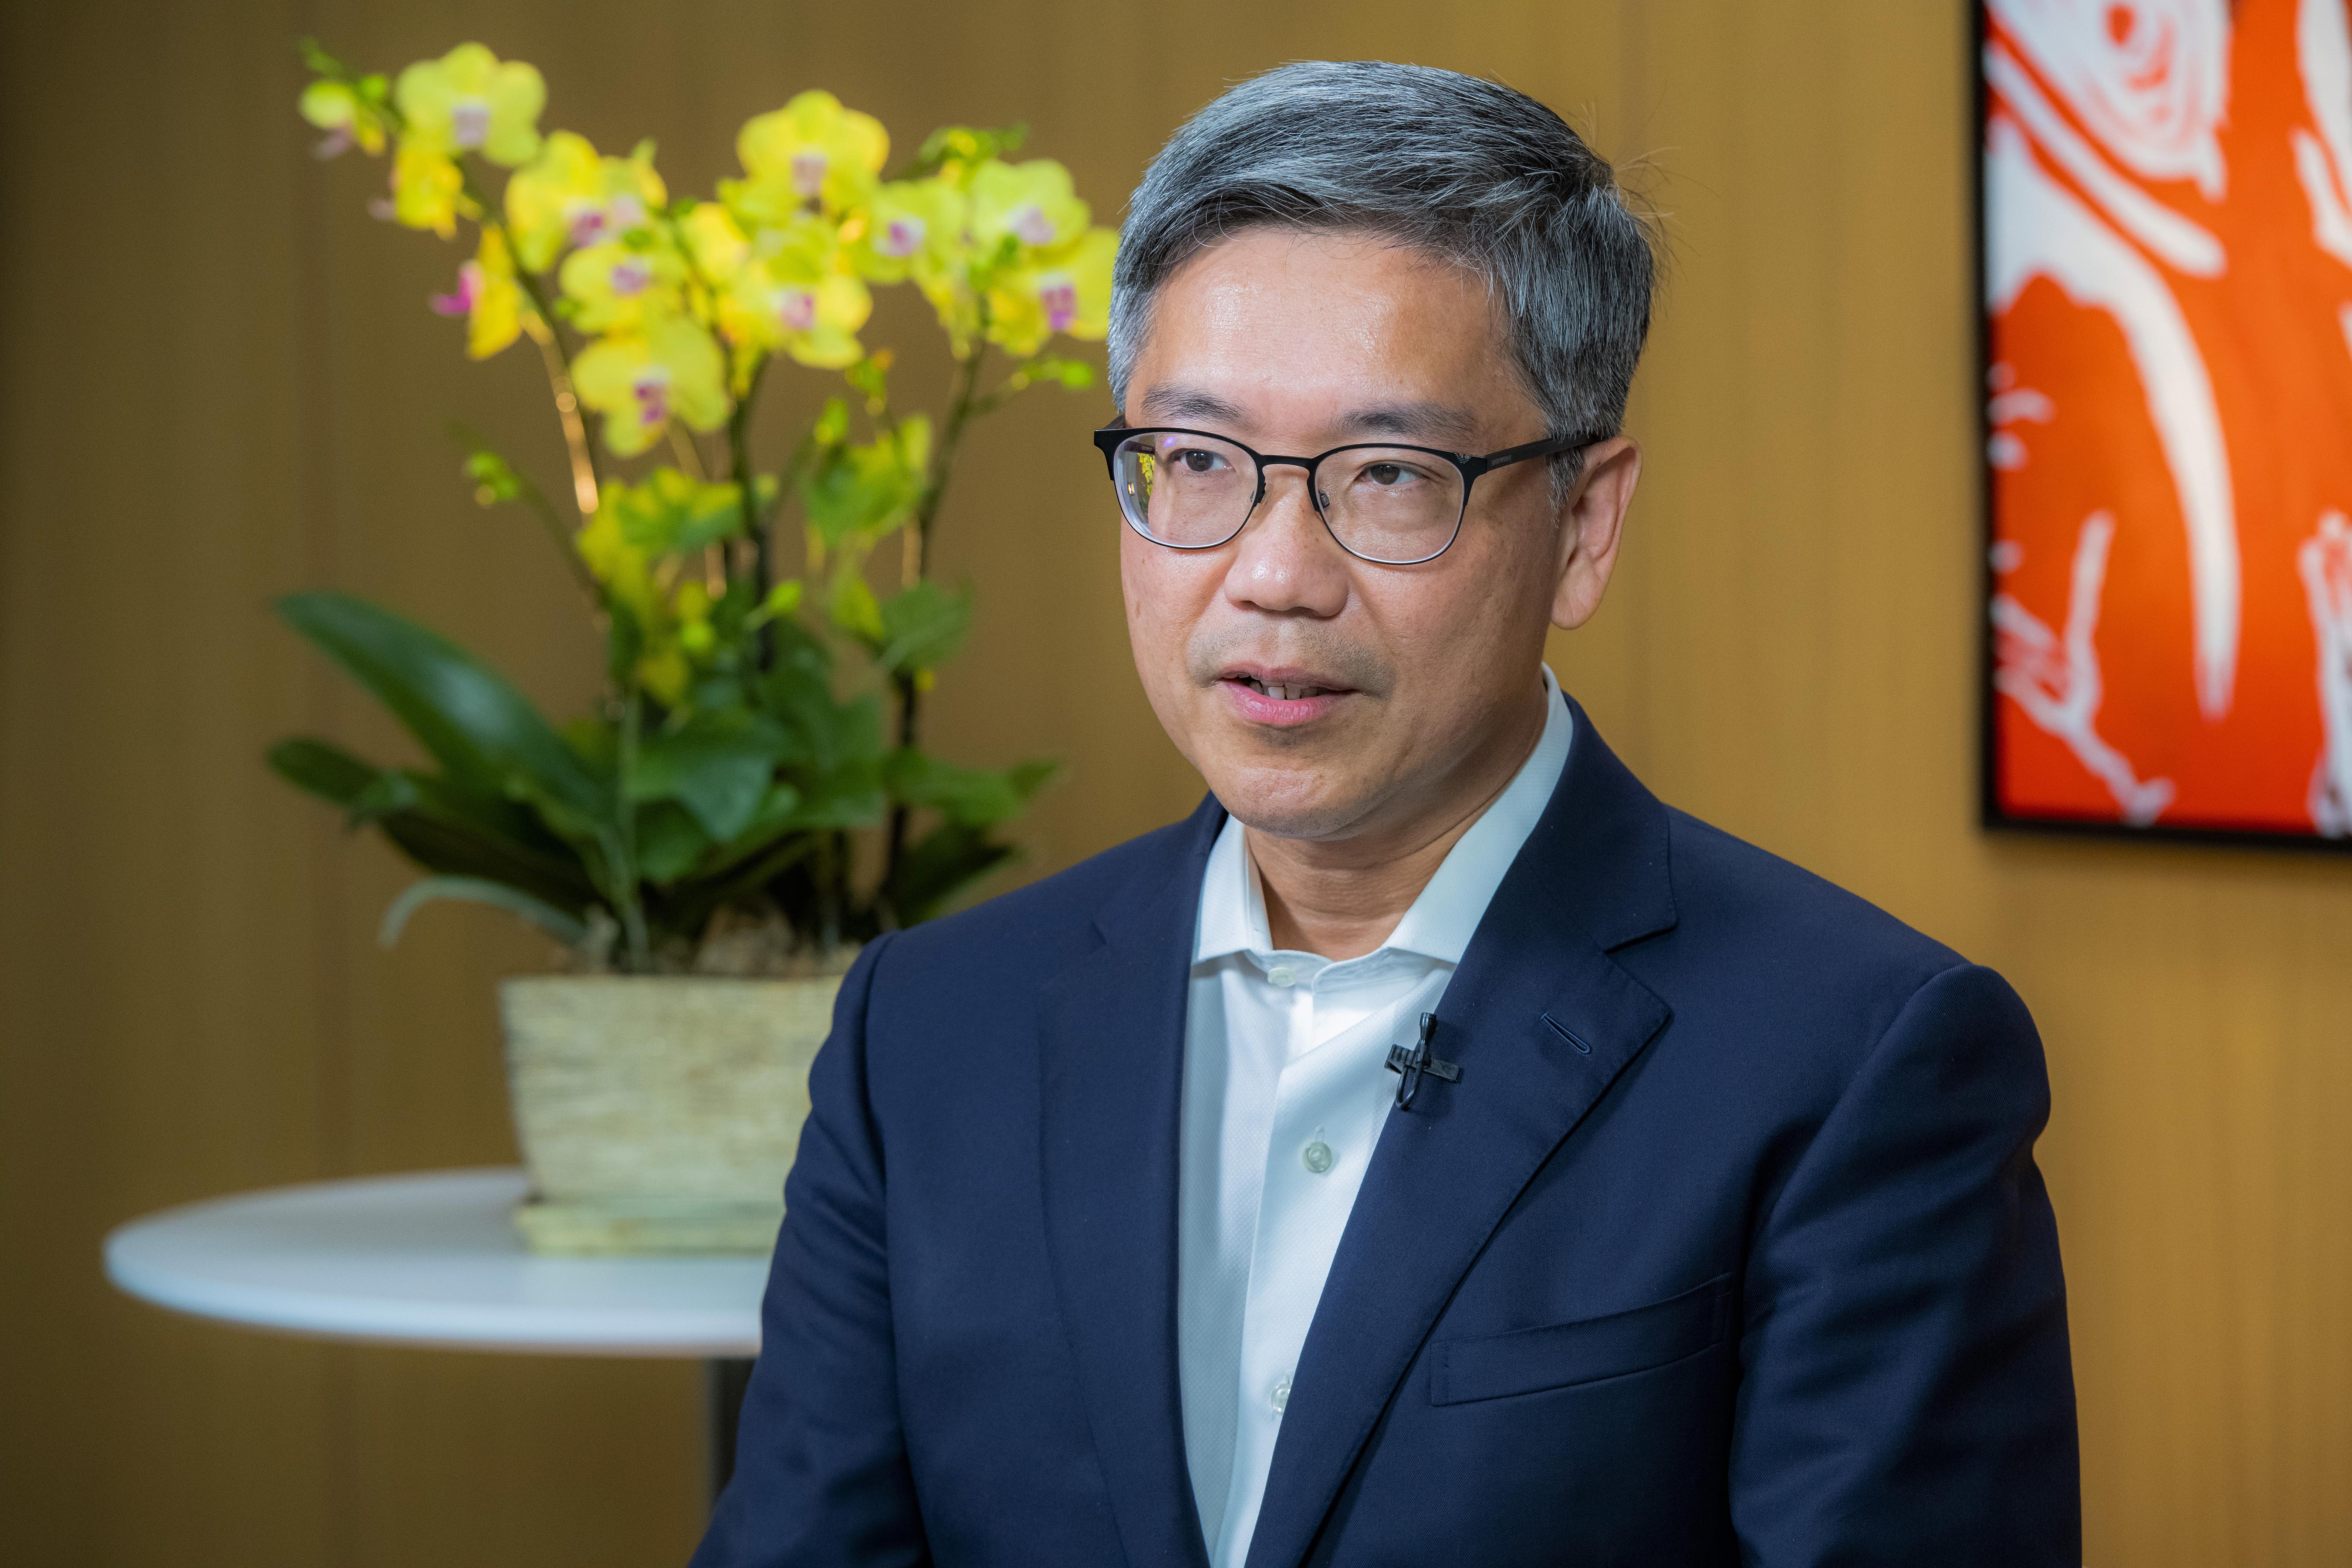 Mr Arthur Yuen, Deputy Chief Executive of the HKMA, shares his key takeaways from the event in his closing remarks.